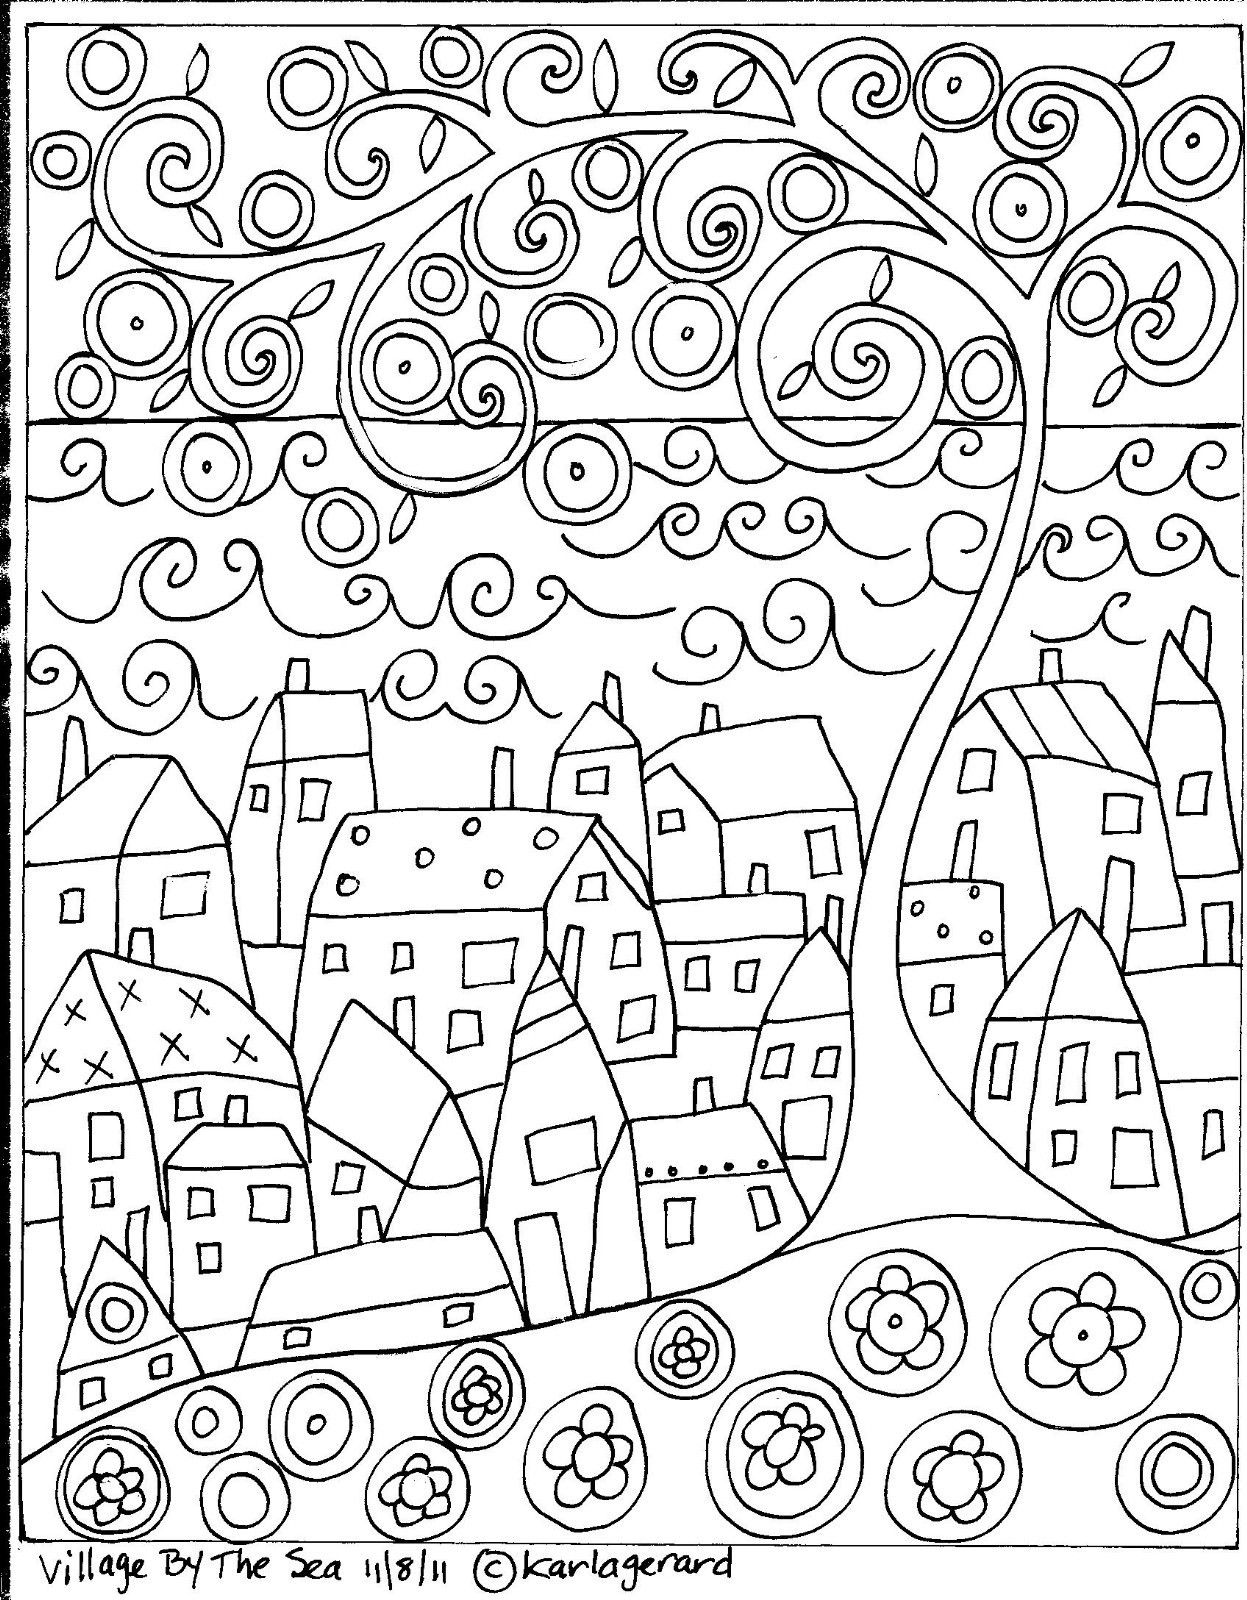 RUG HOOK PAPER PATTERN Village By The Sea ABSTRACT FOLK ART ...